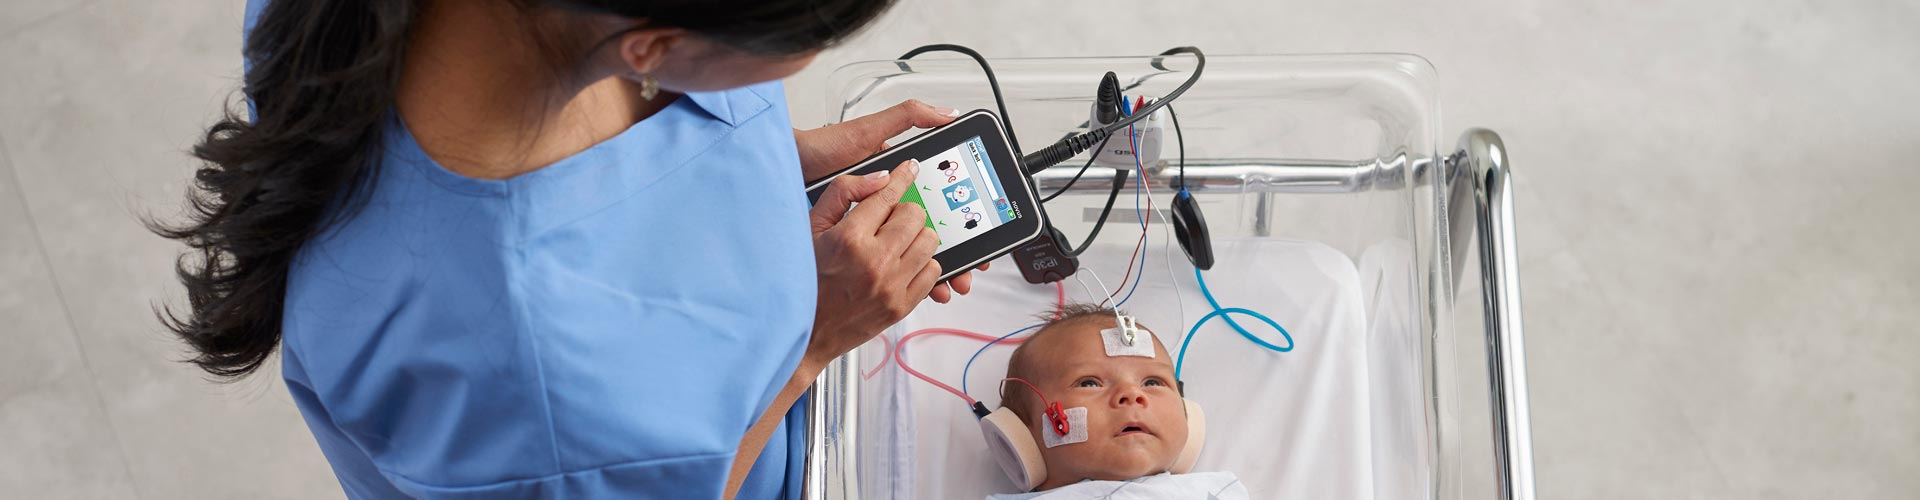 Audiologist AABR Testing Baby